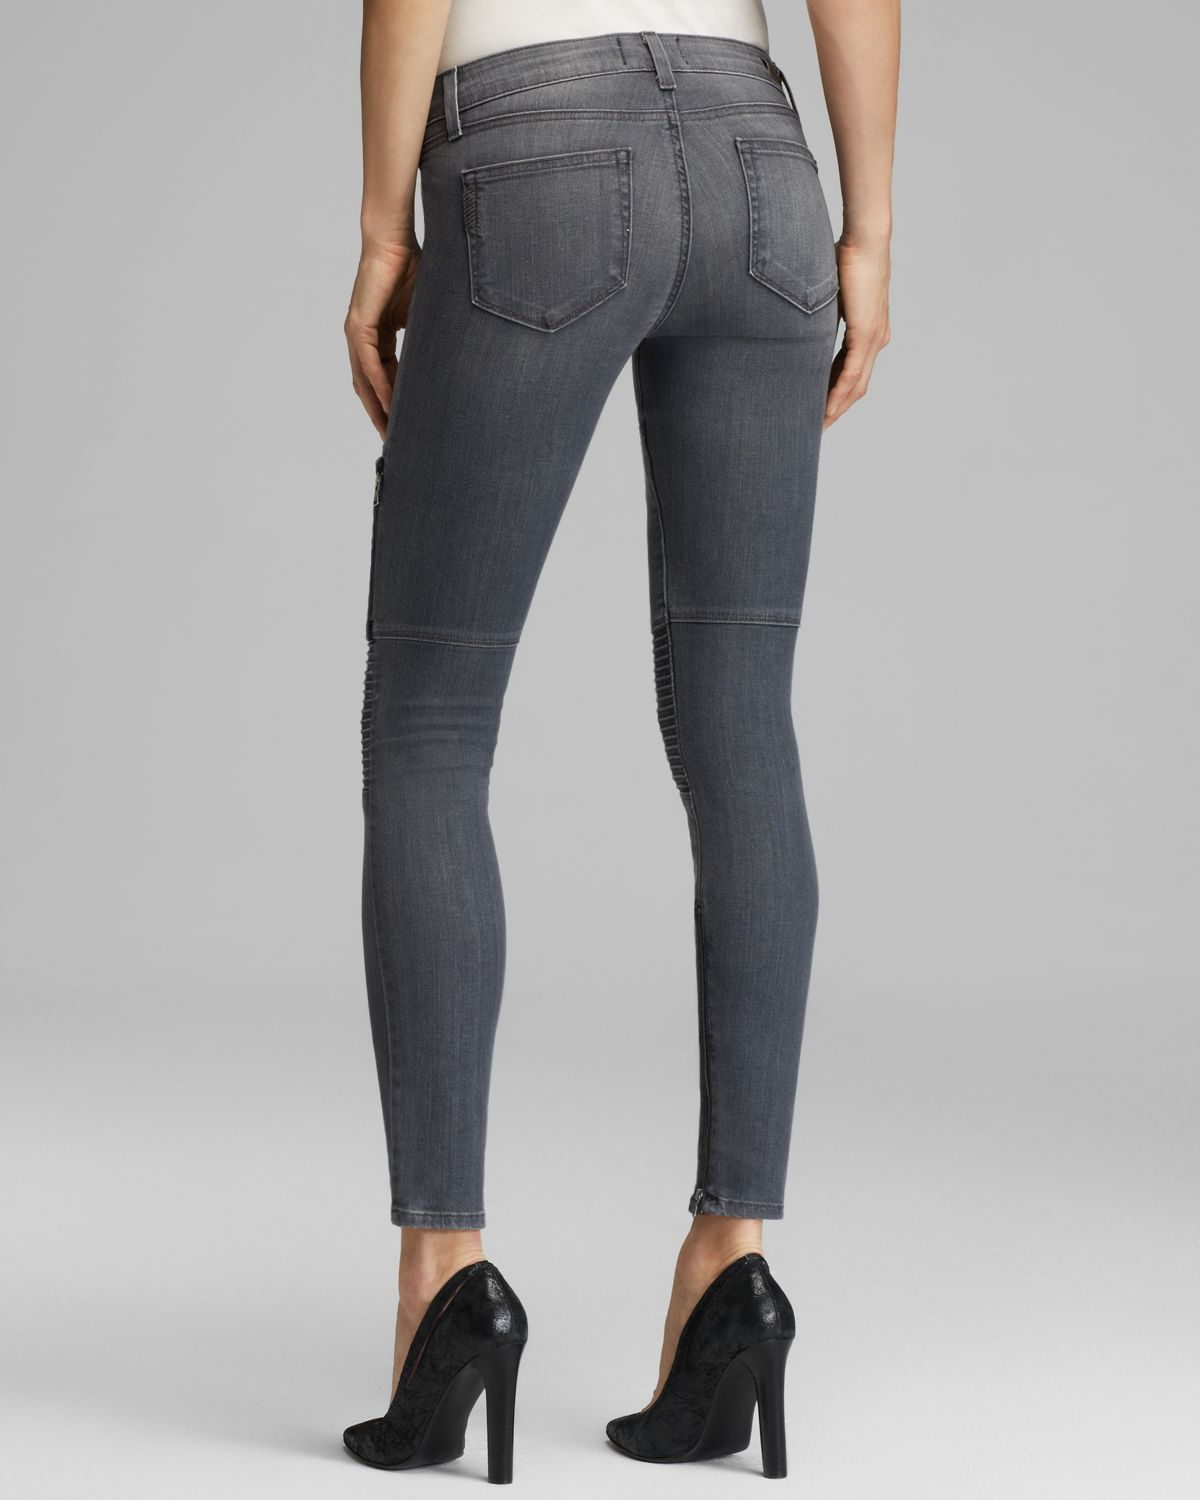 PAIGE Jeans Demi Ultra Skinny in Hart in Grey